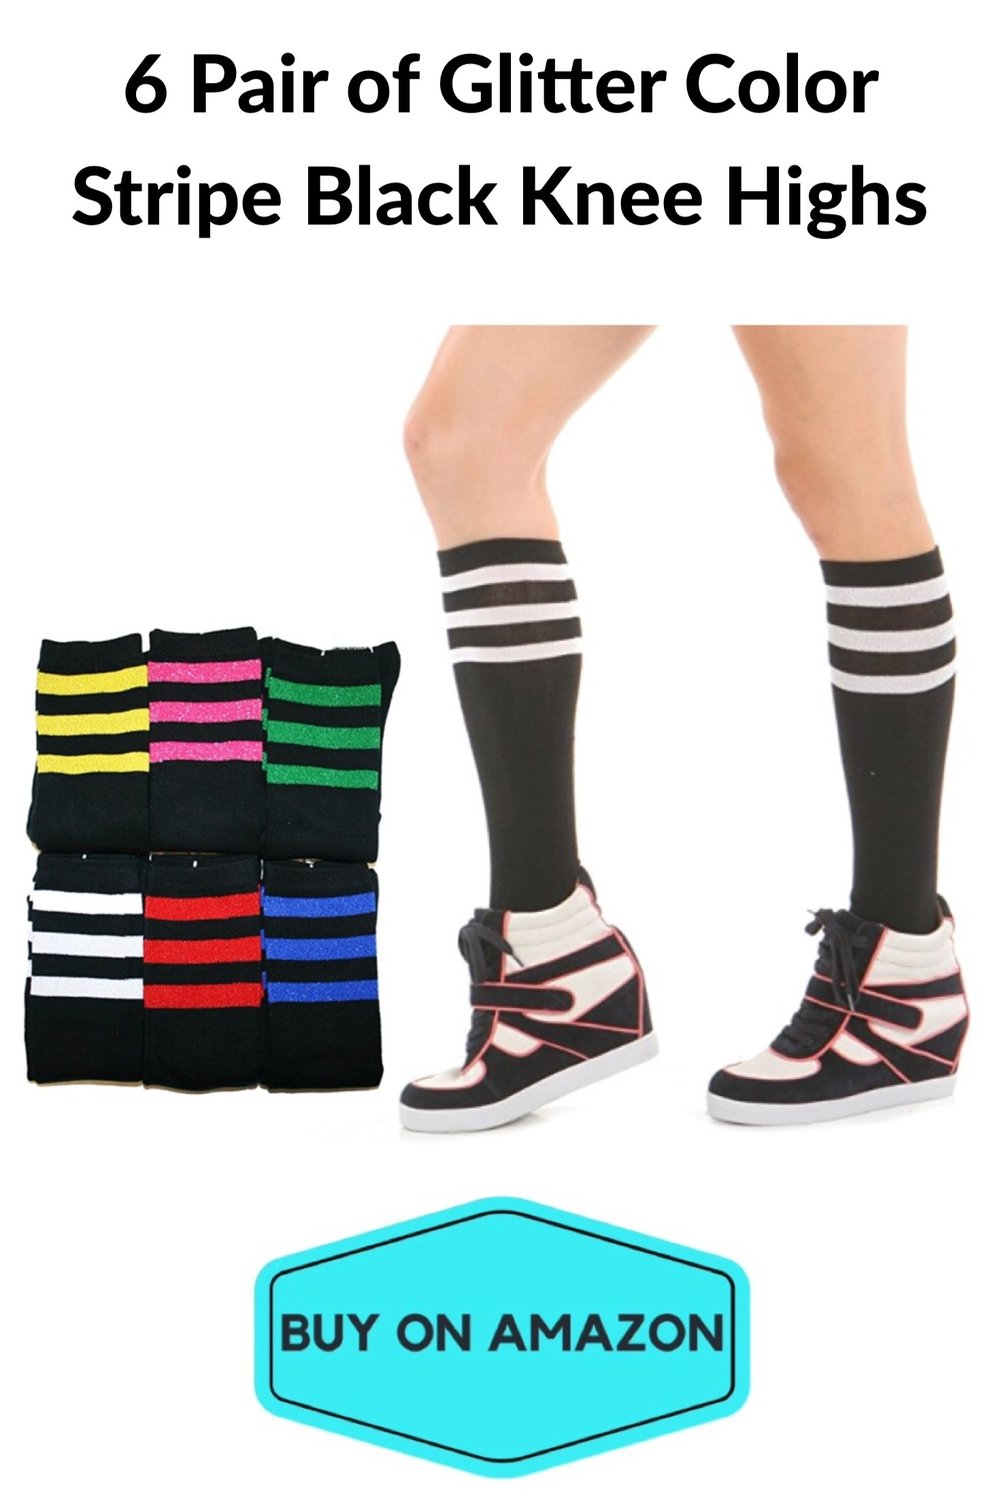 Glitter Stripe Knee High Gym Socks, 6-pack